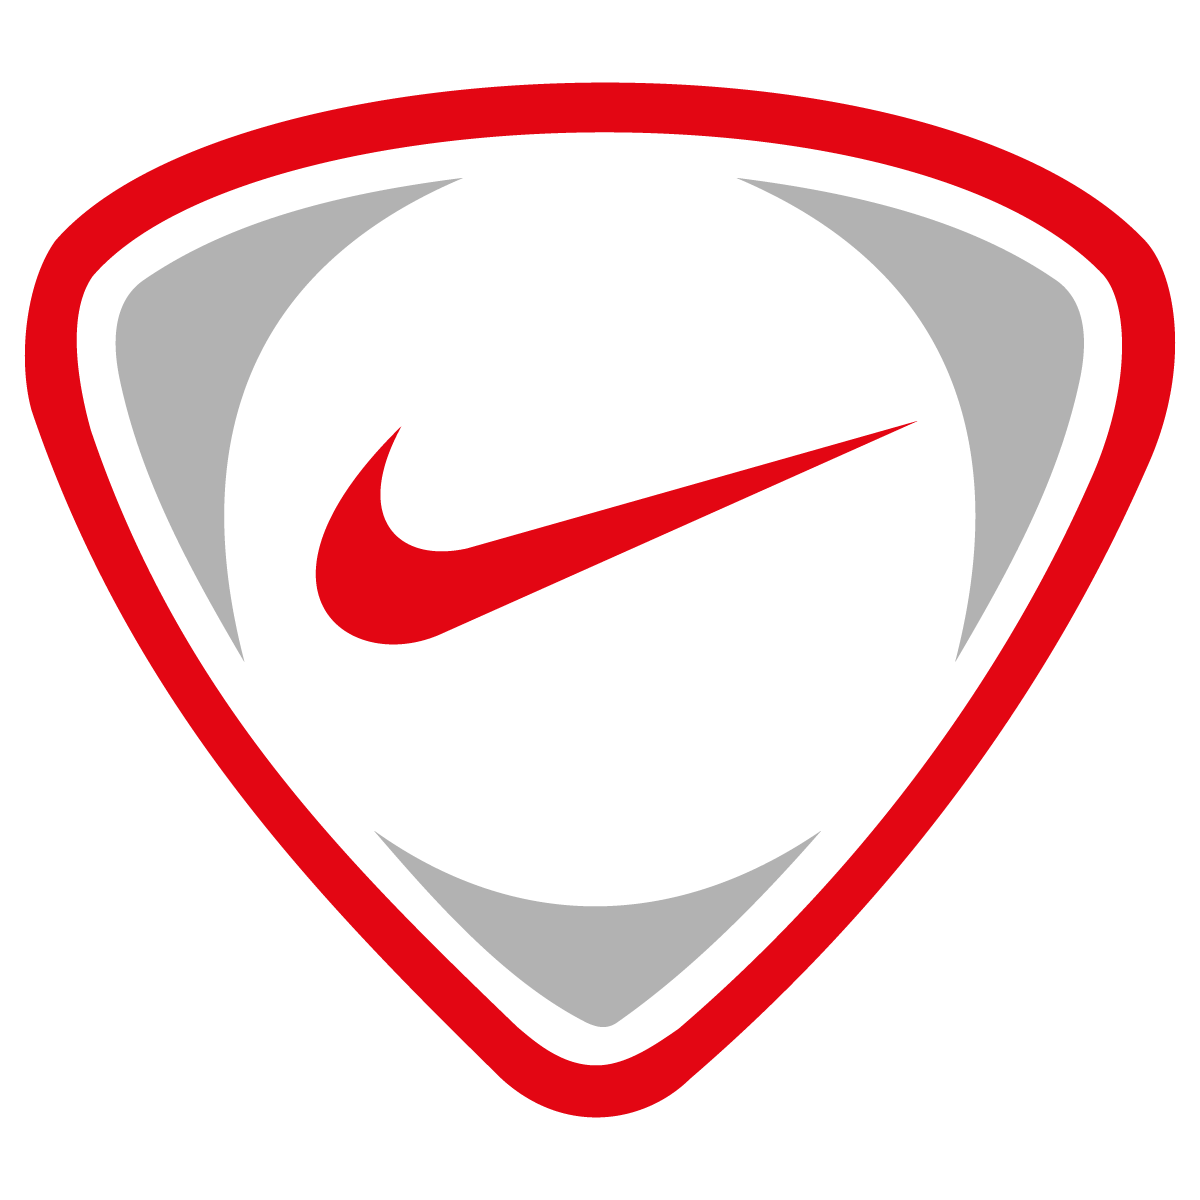 Nike Football Logo Png & Free Nike Football Logo.png.